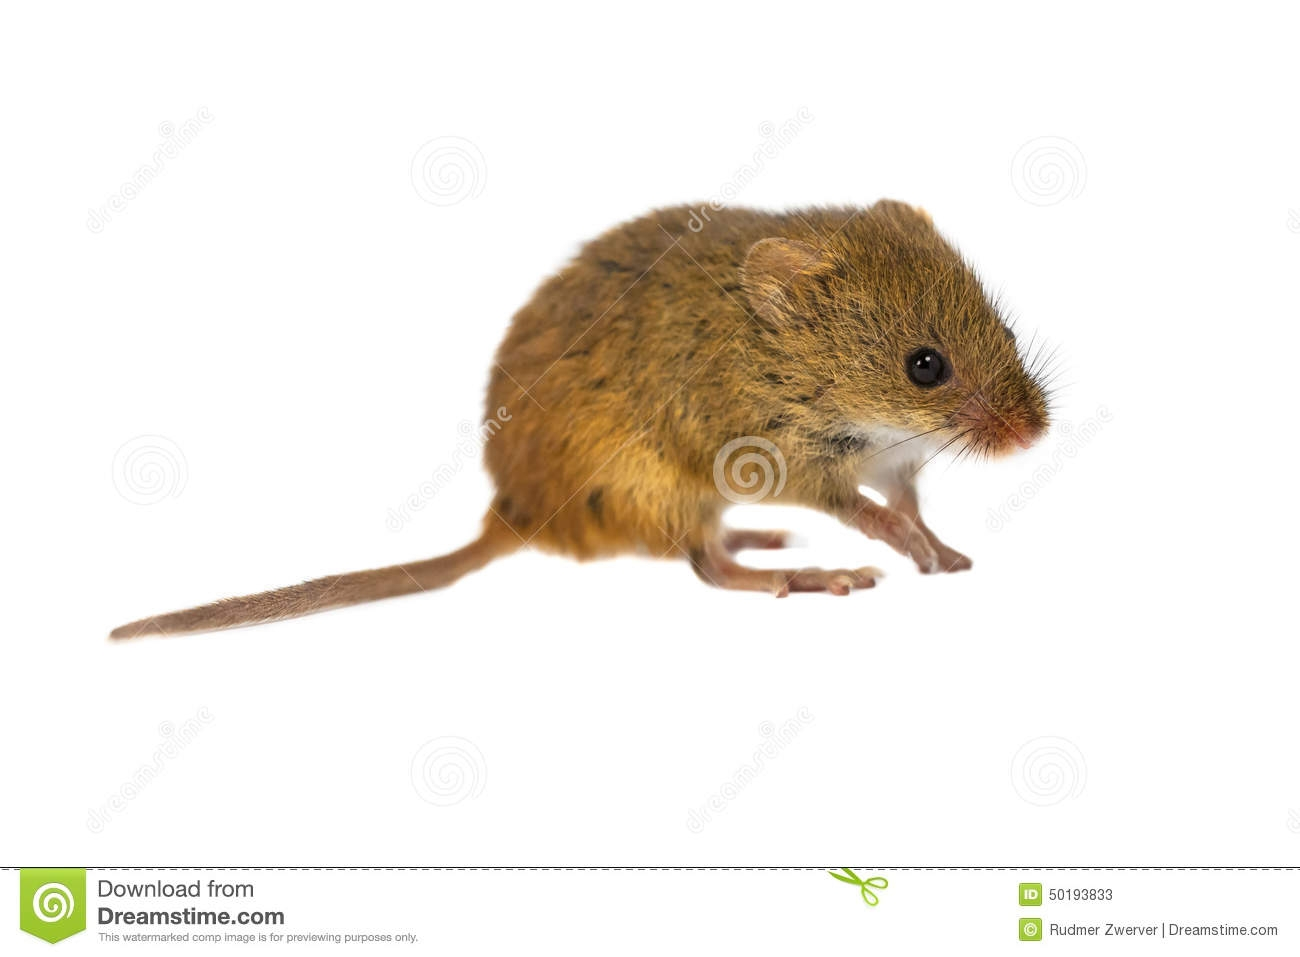 Harvest Mouse clipart #6, Download drawings